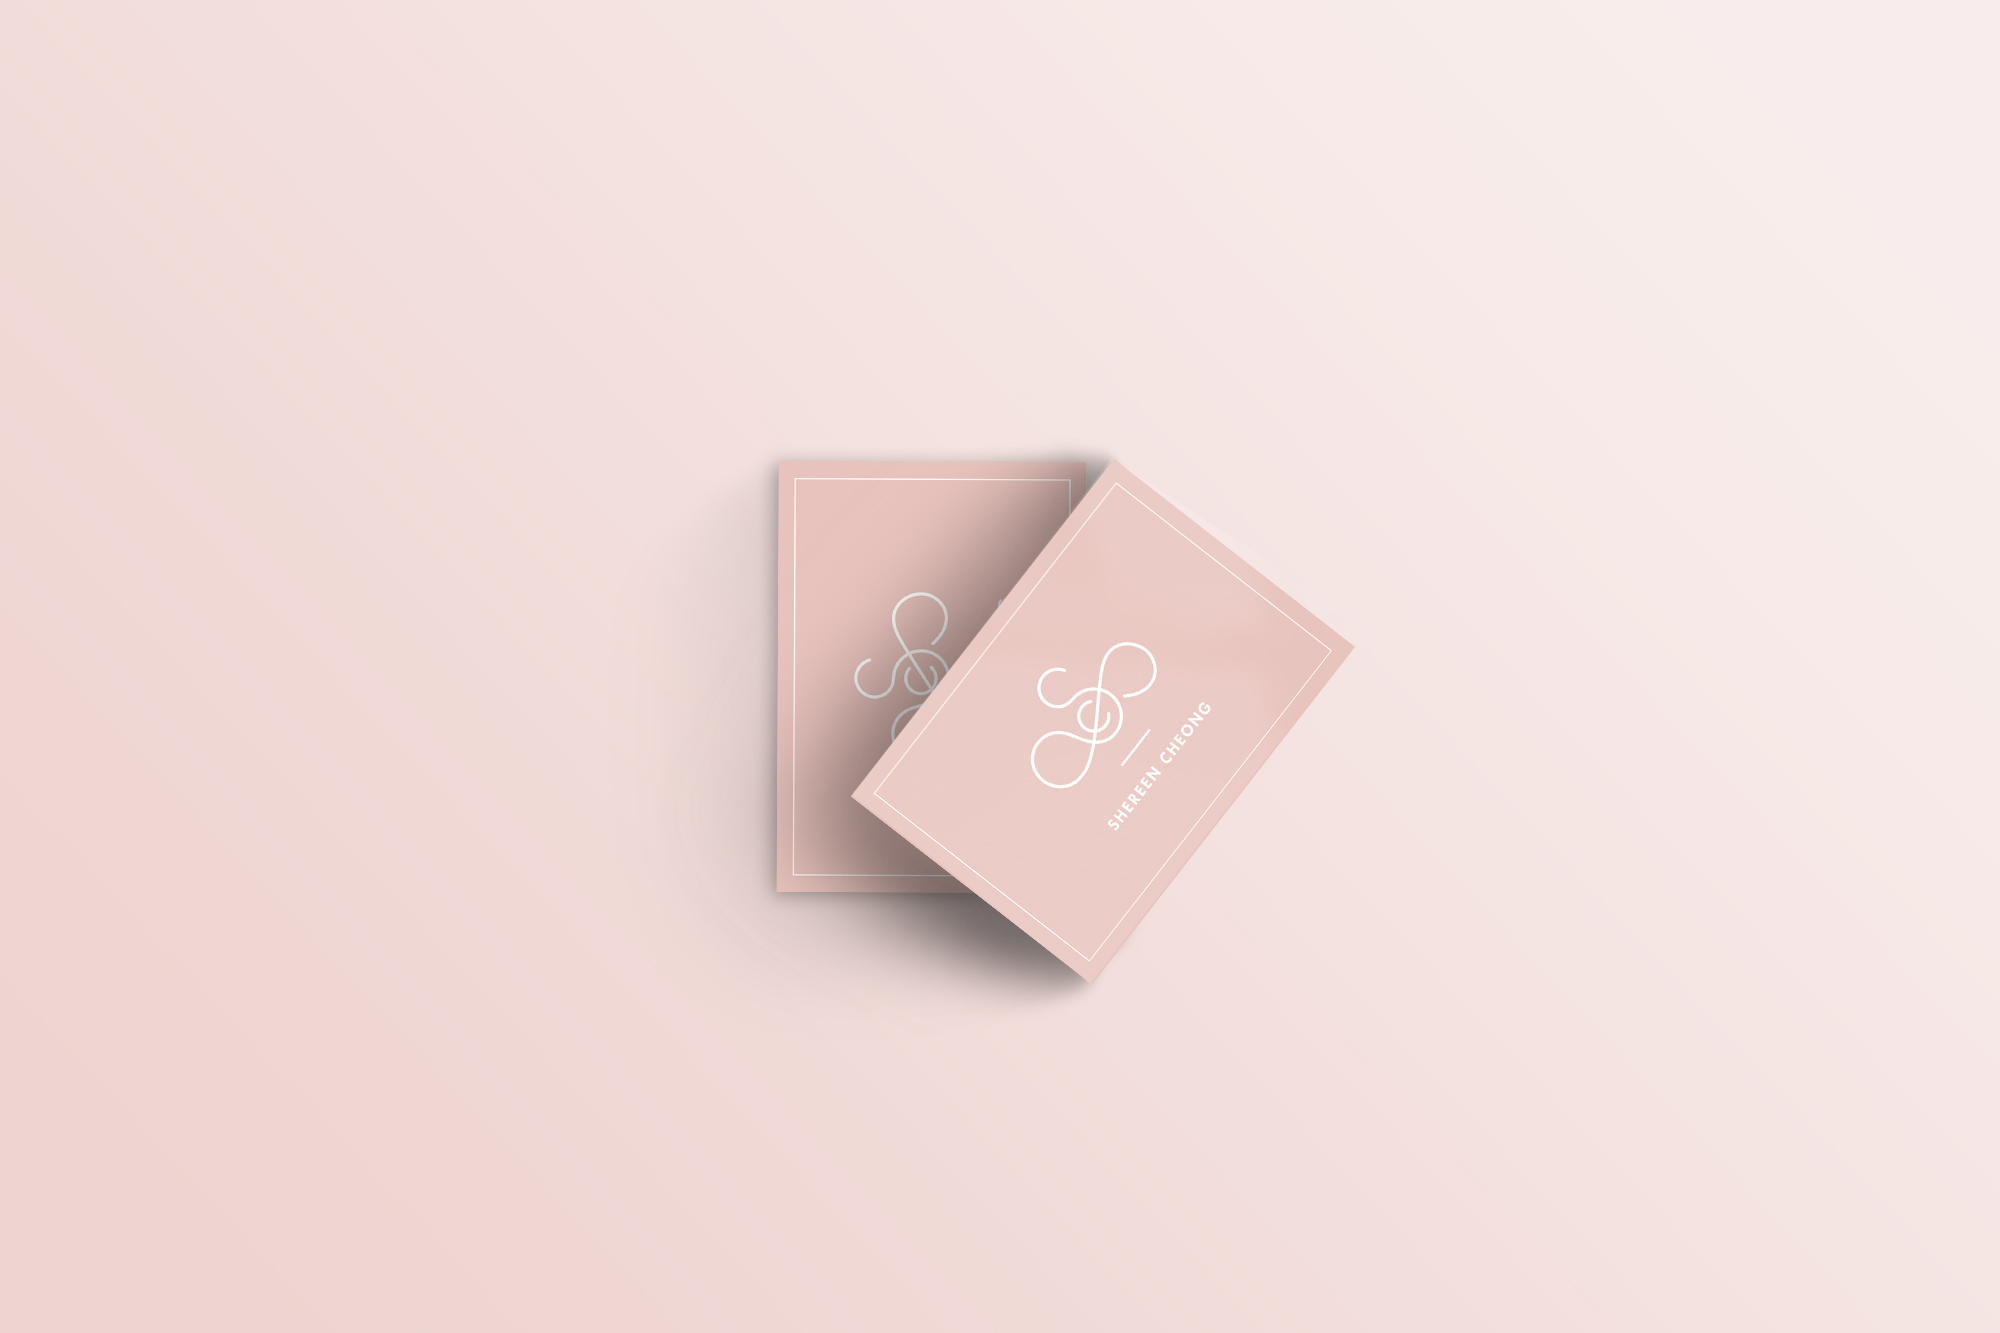 Sher-Business Card Mockup-1.jpg